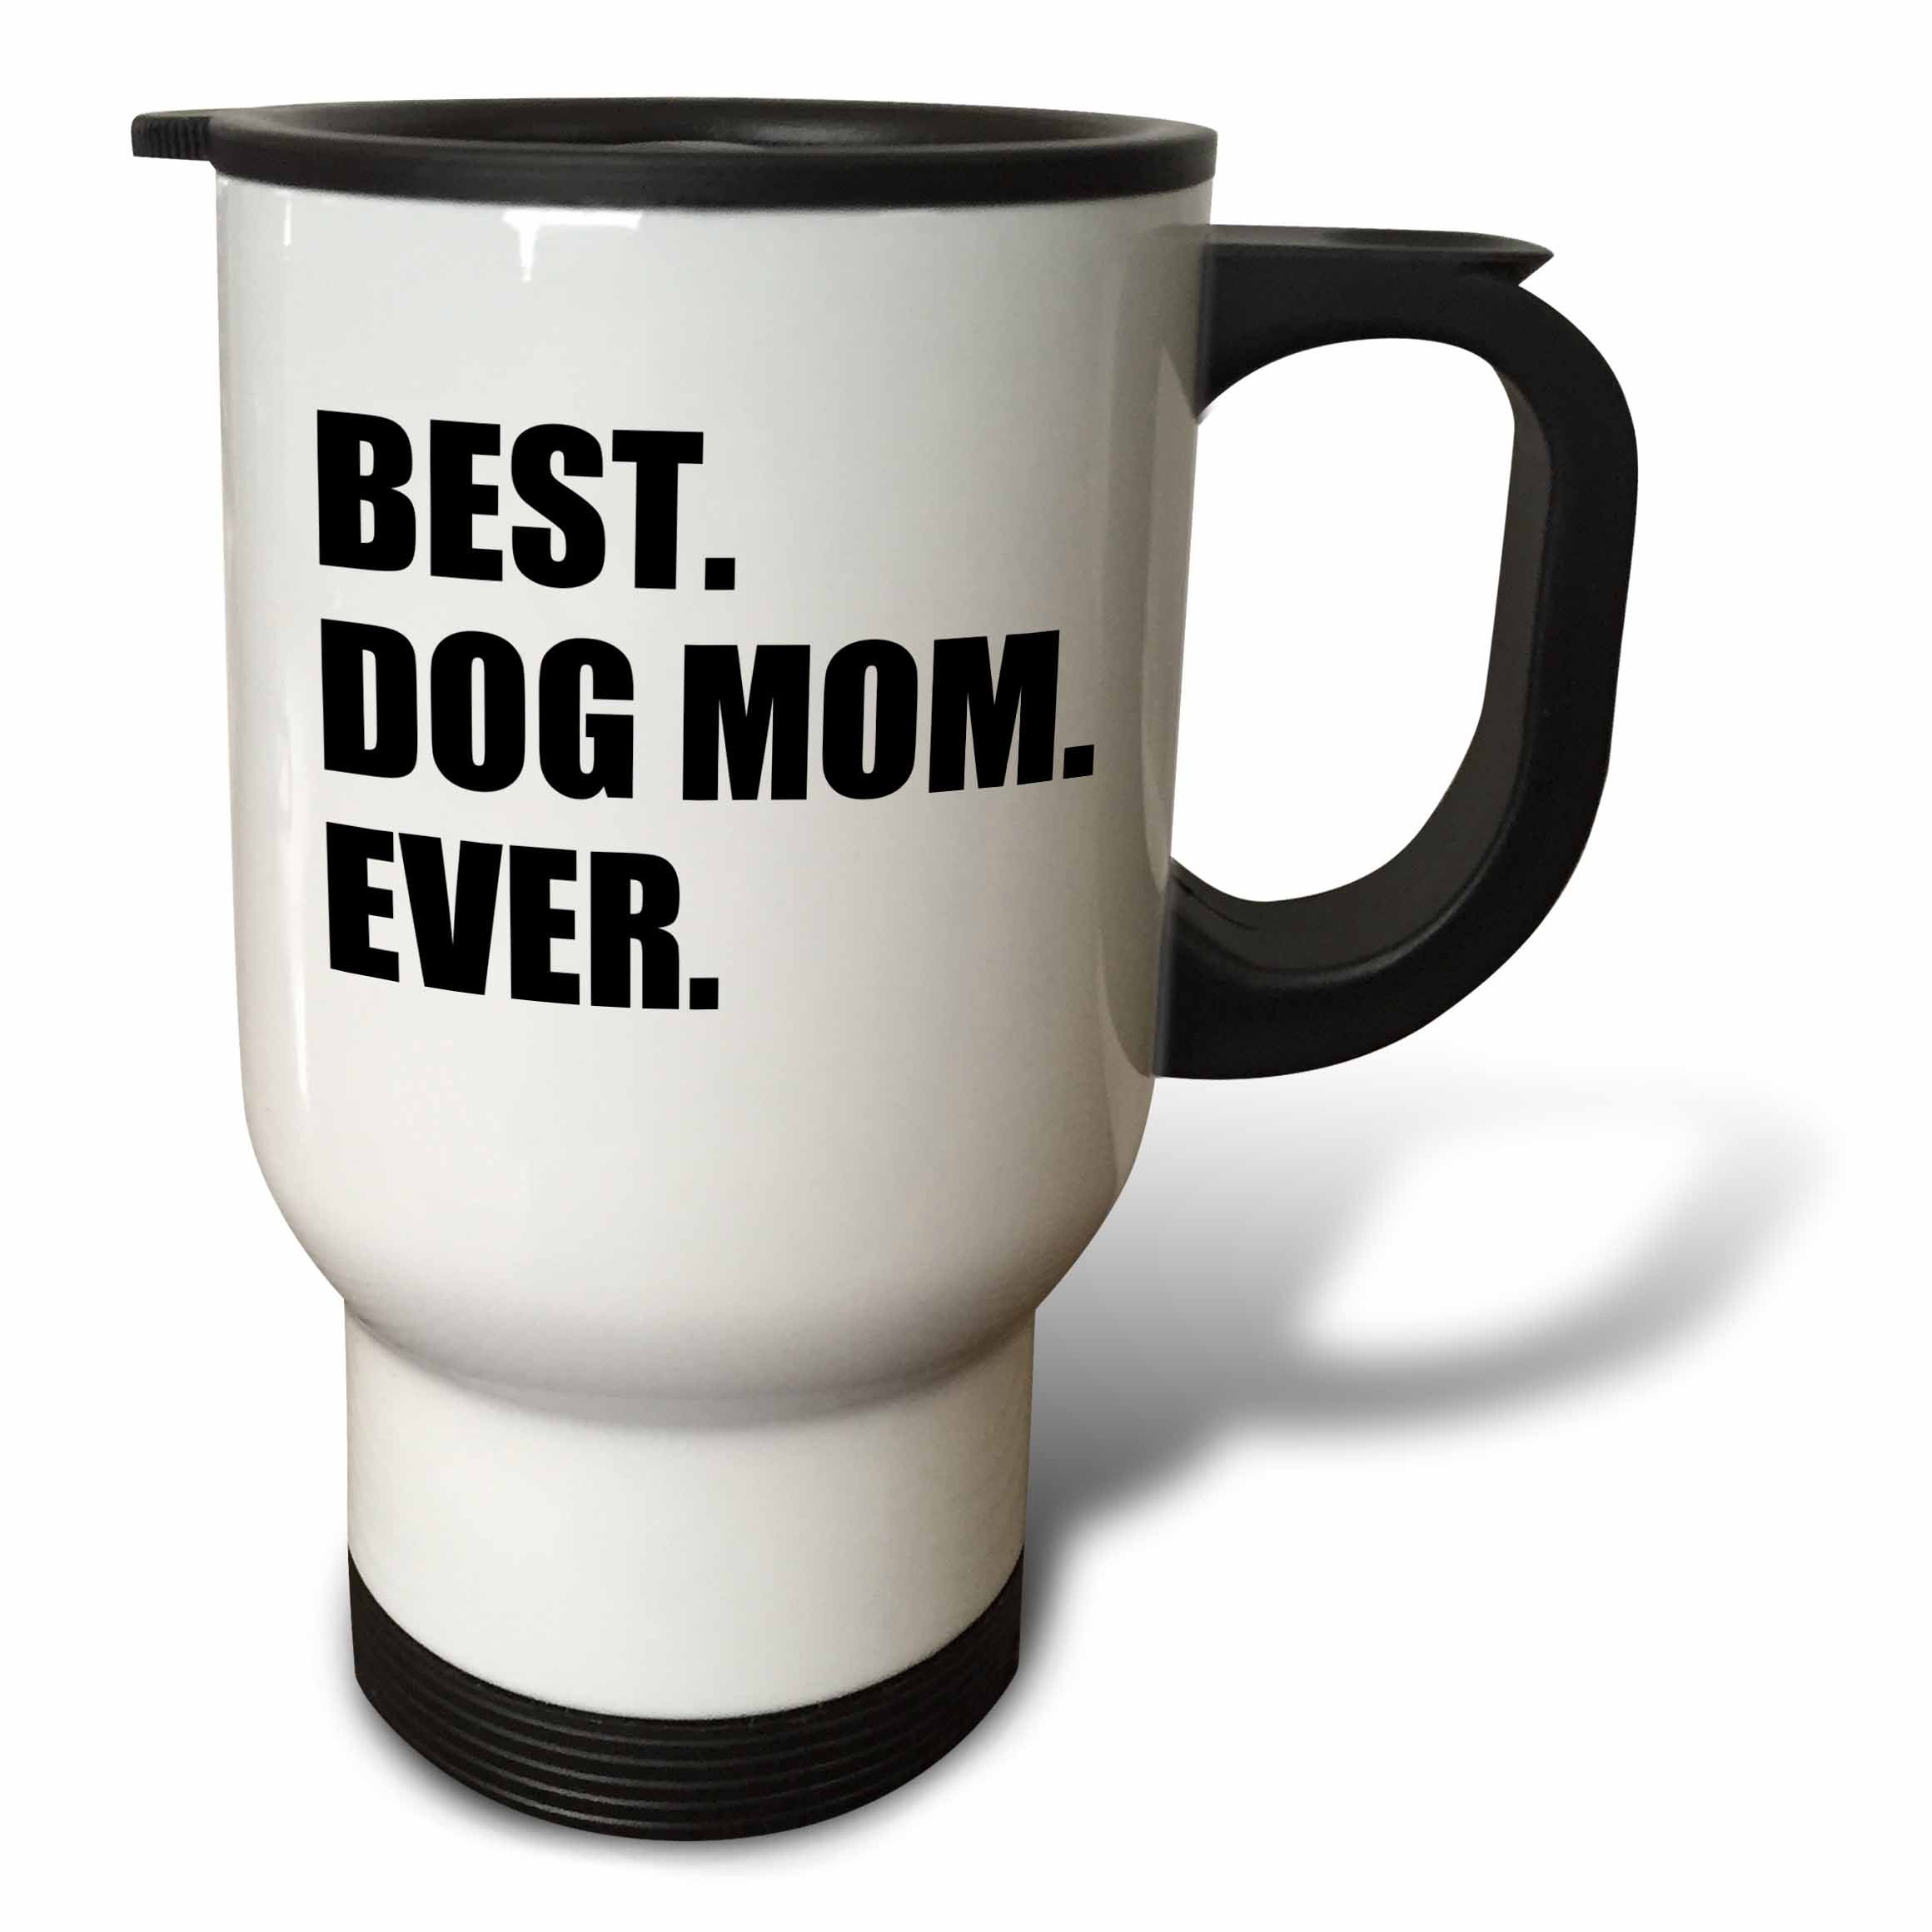 3dRose tm_184993_1 Best Dog Mom Ever Fun Pet Owner Gifts for Her Animal Lover Text Travel Mug, 14-Ounce, Stainless Steel